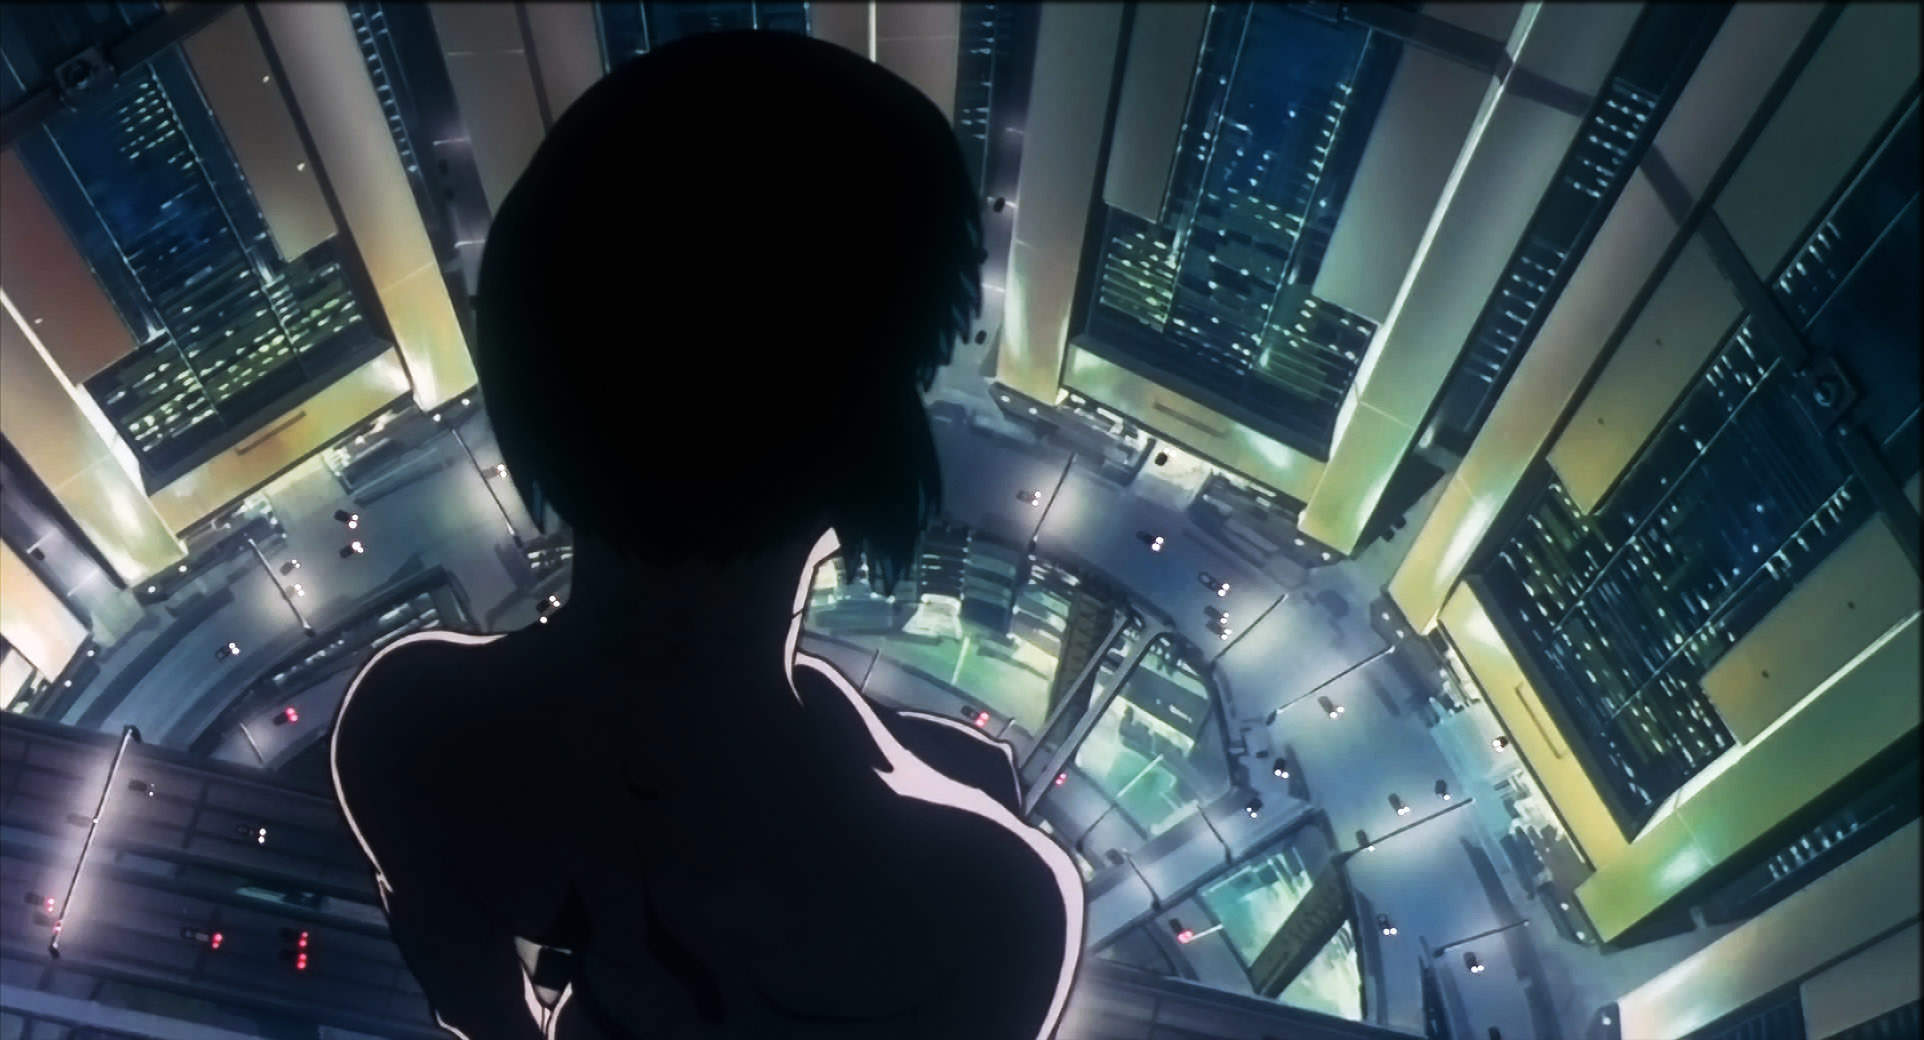 Ghost in the Shell, over two decades old, remains our most challenging film about technology